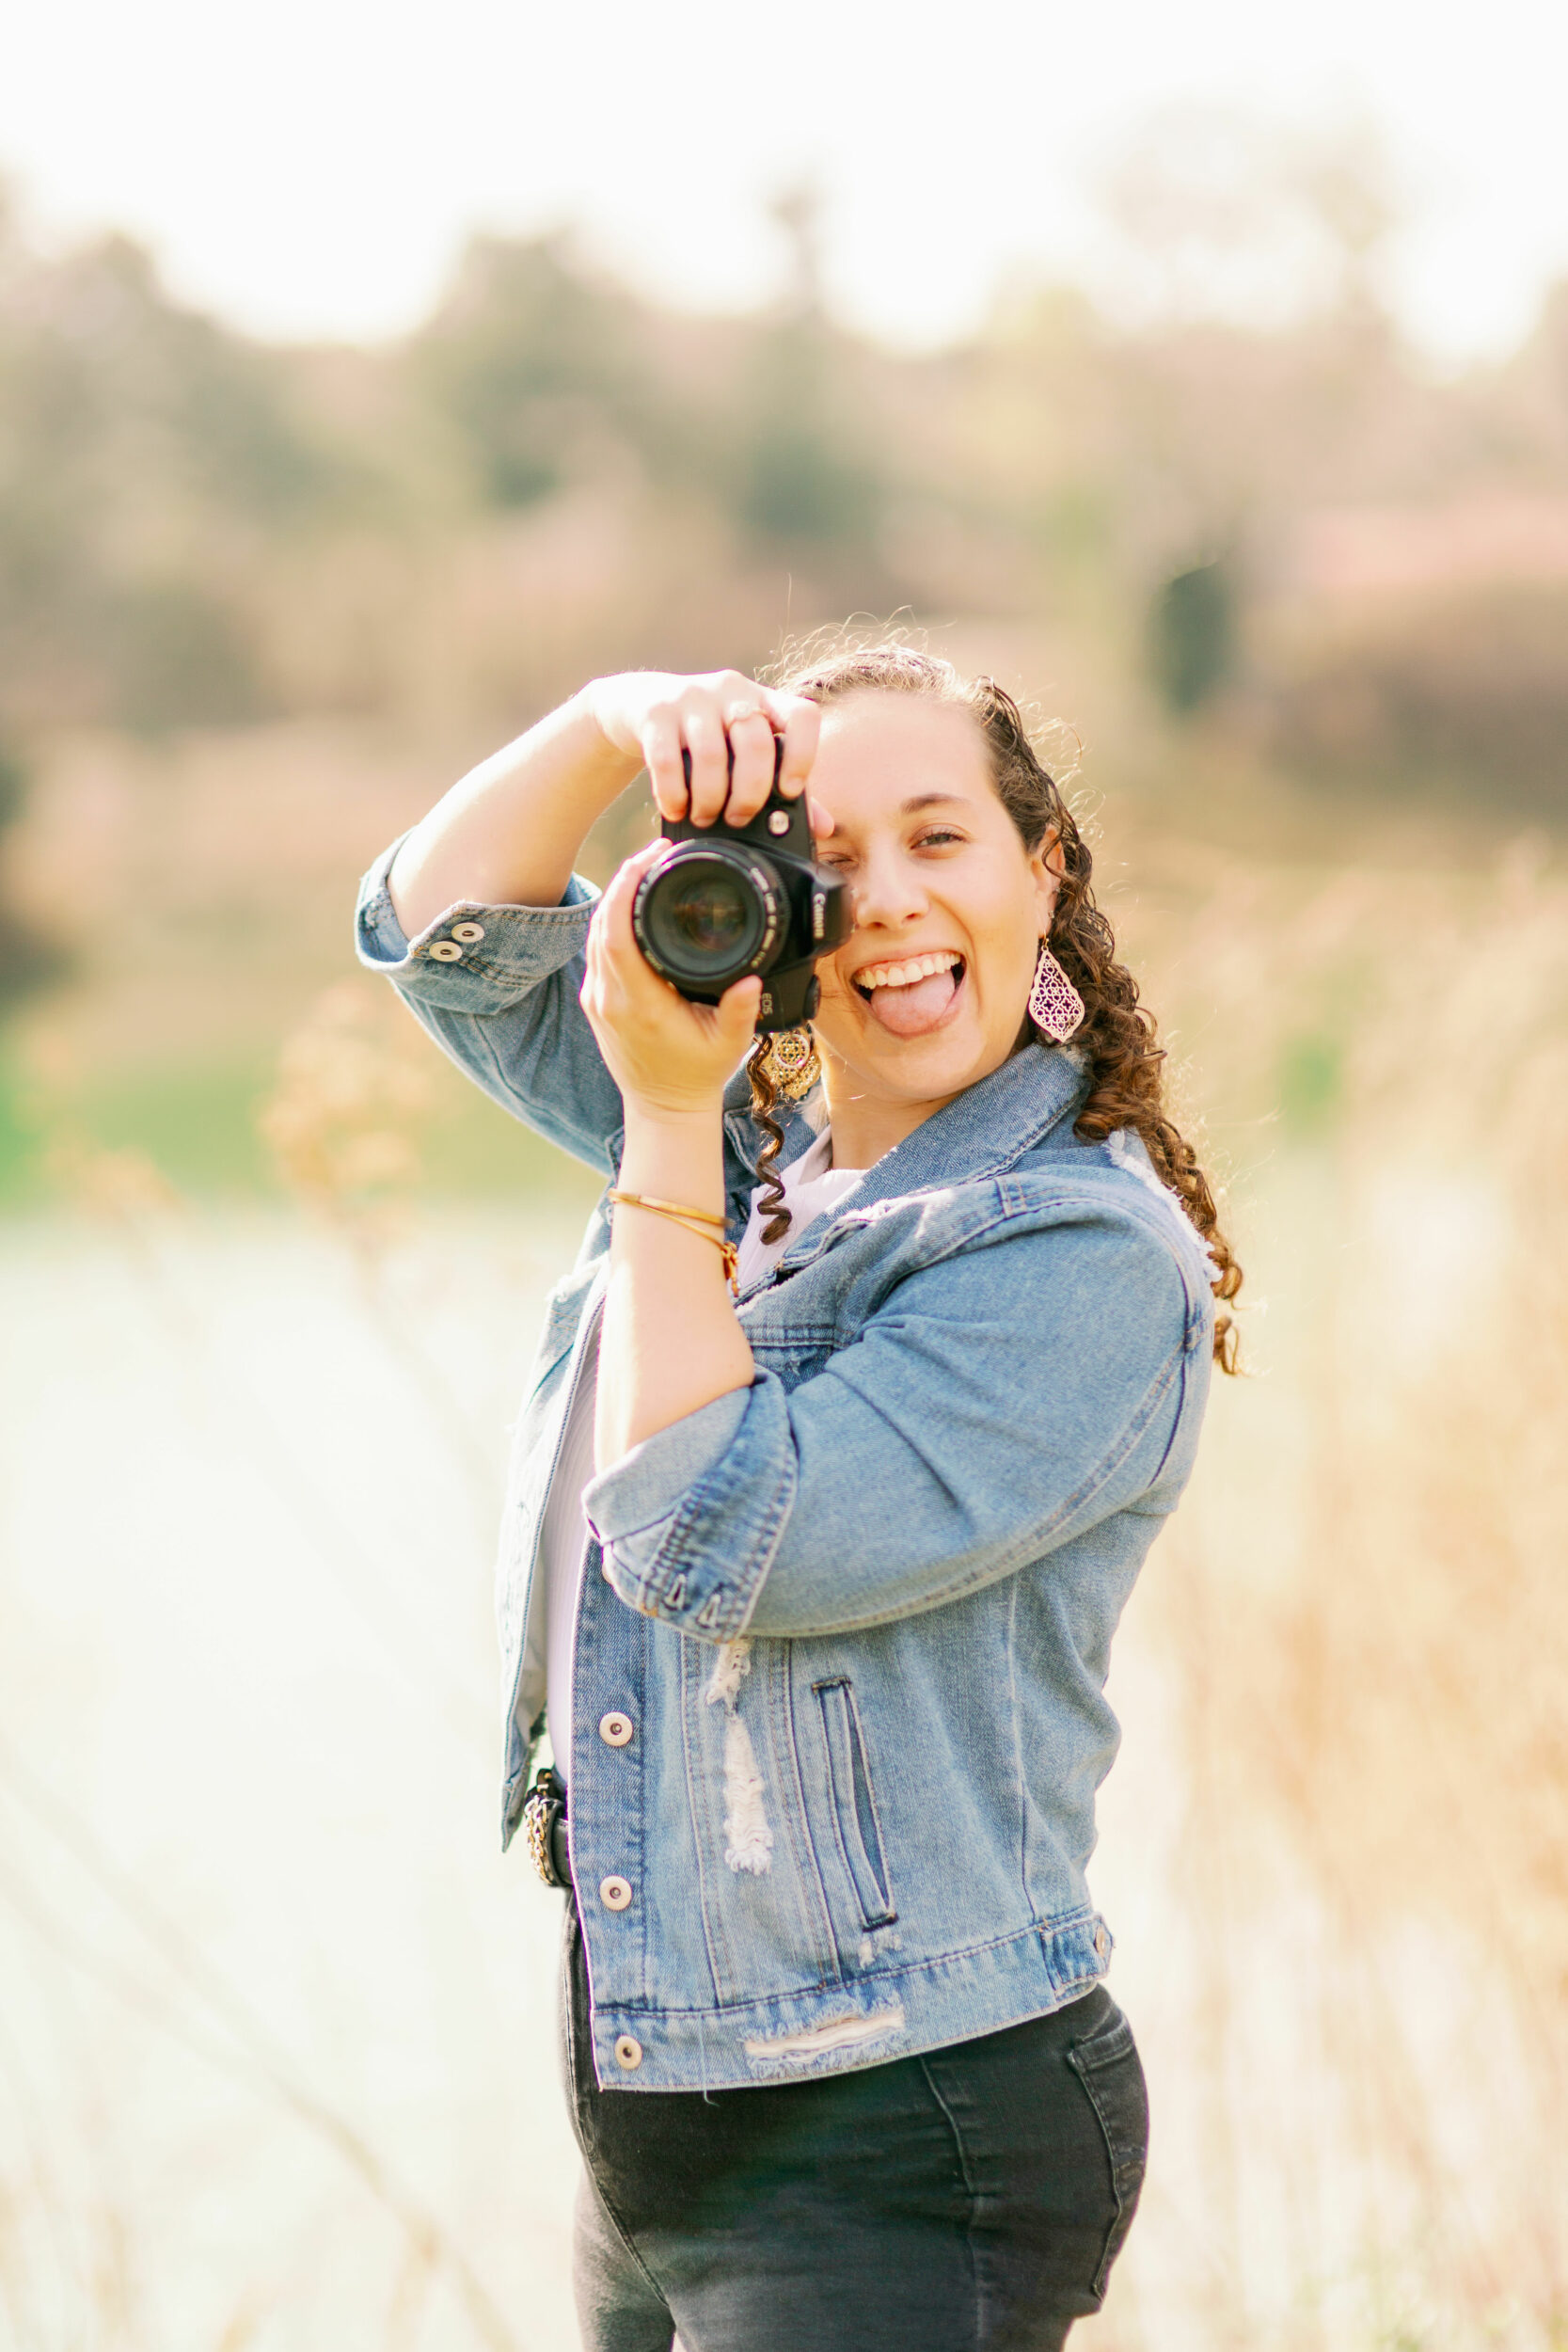 Arielle a florida wedding photographer poses with camera for lifestyle headshot